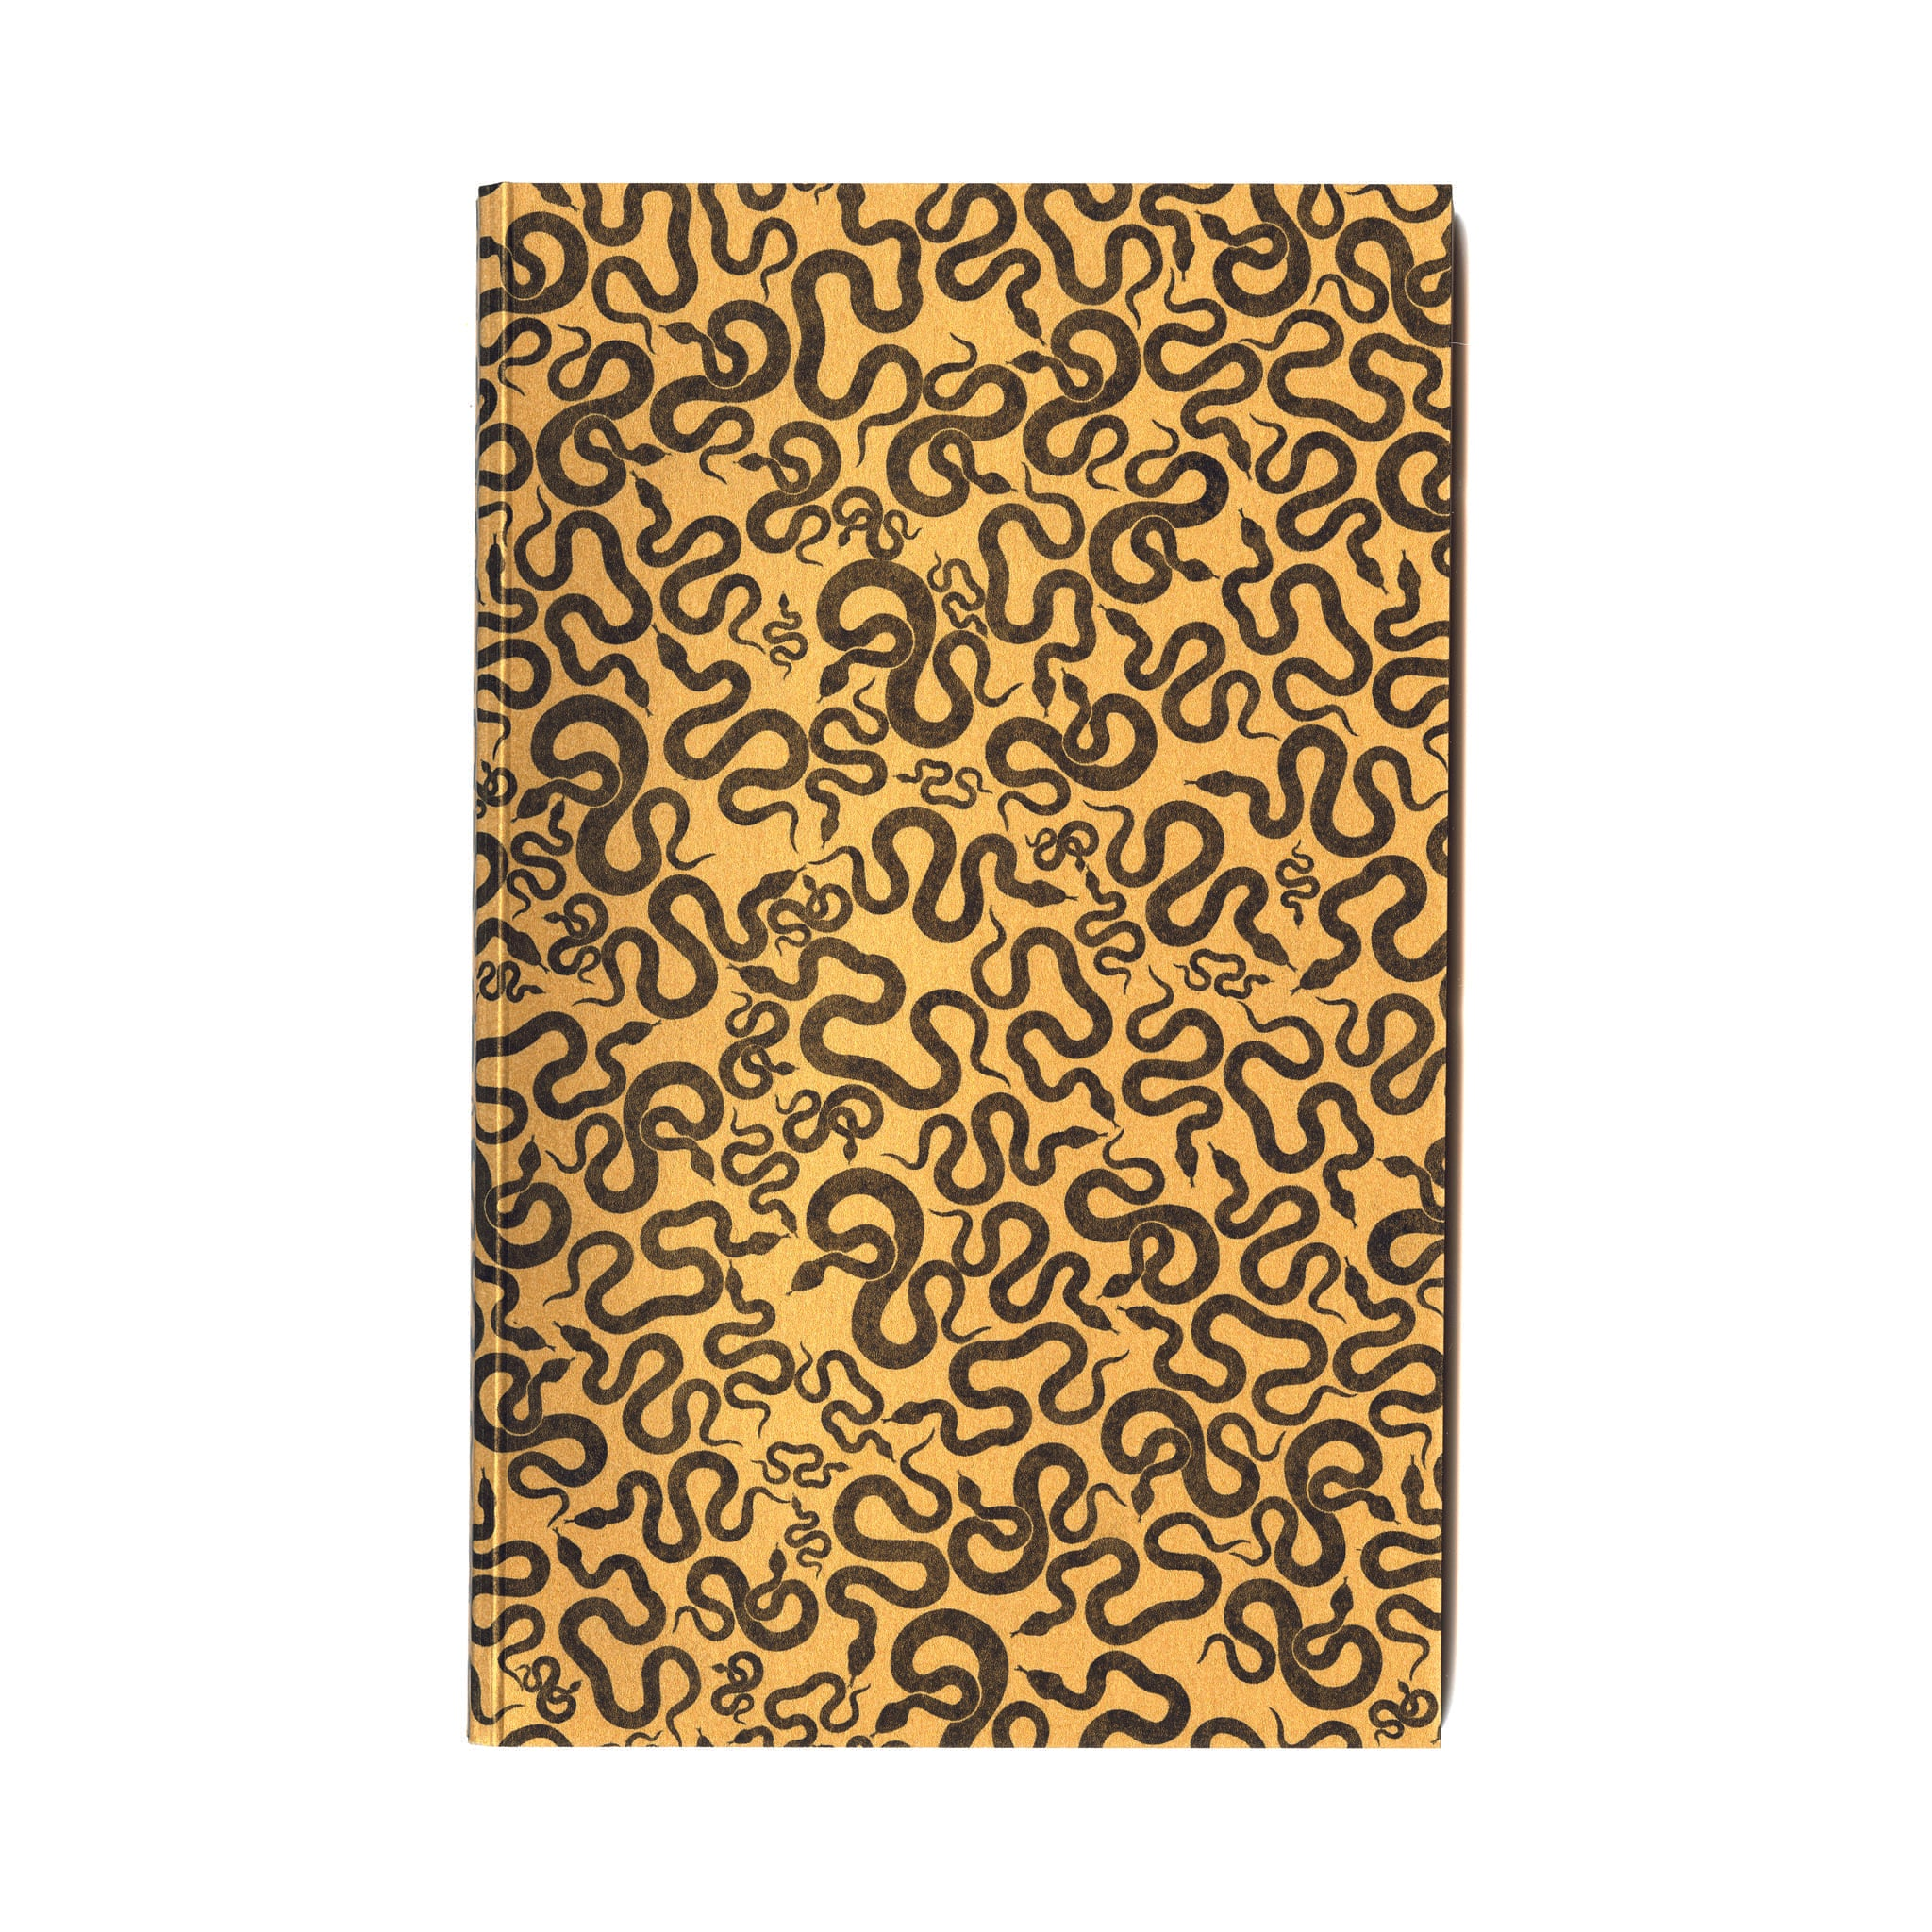 Everyday journal with yellow original snake design serpent cover & eighty 100% cotton paper pages